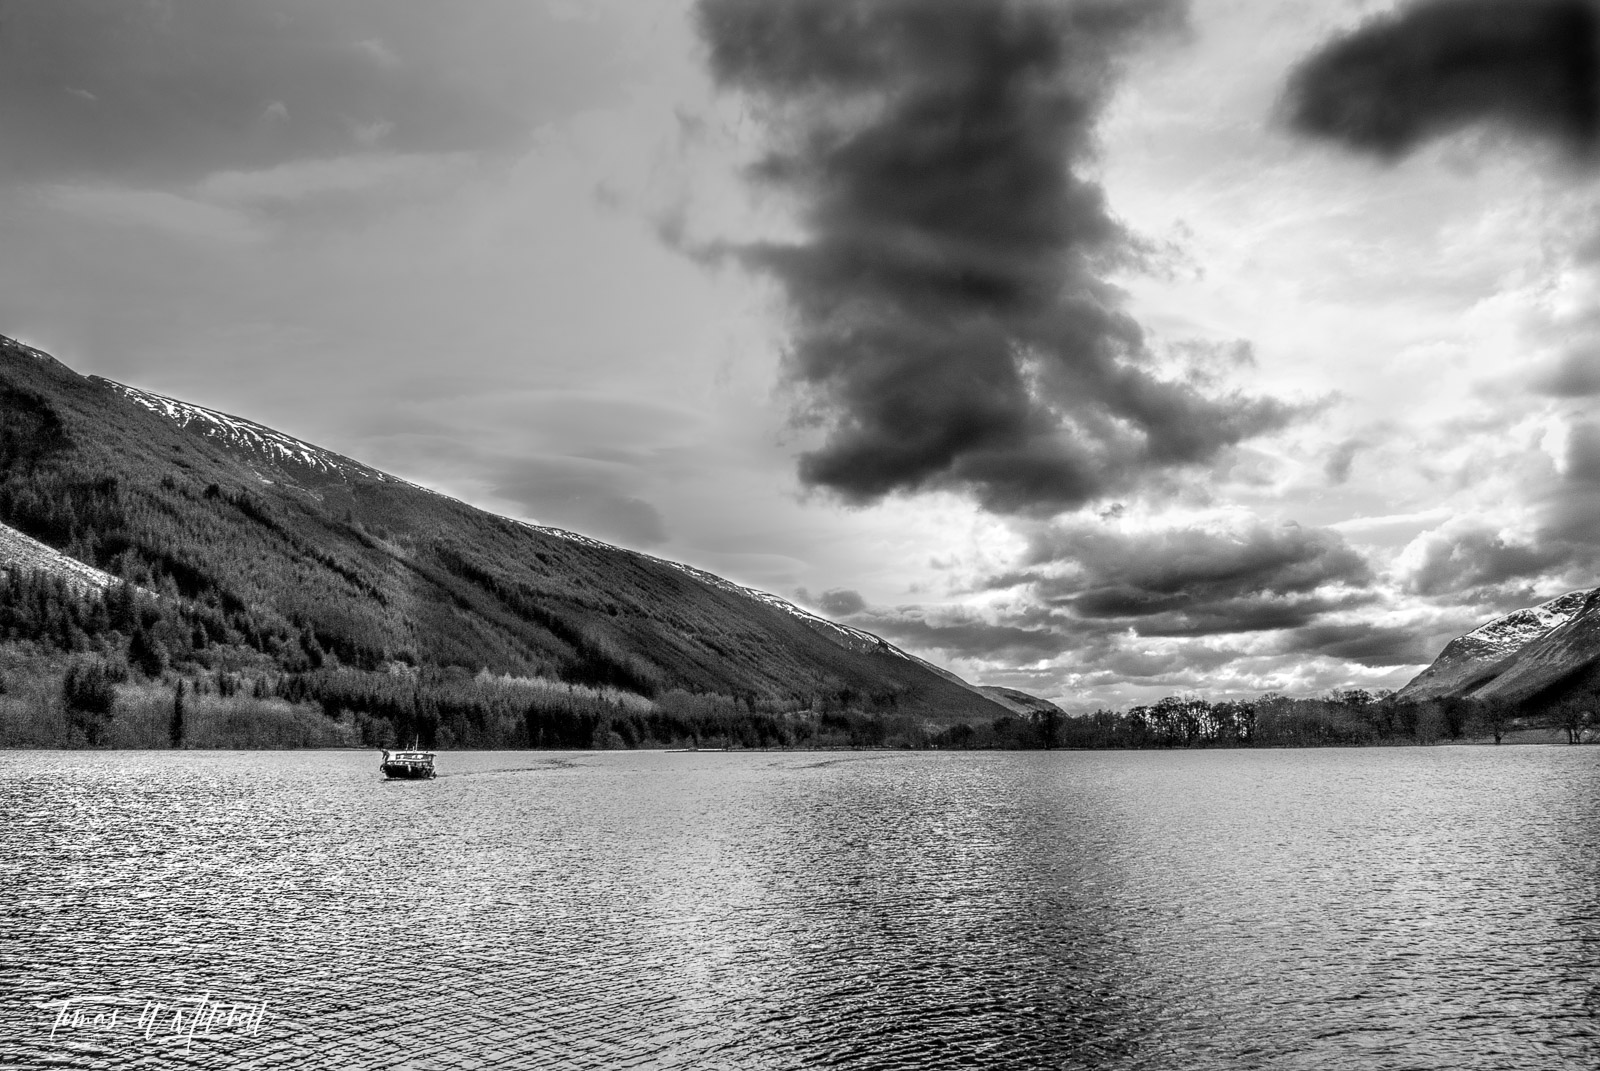 limited edition, fine art, prints, ceann loch, scotland, boat, water, caledonian canal, clouds, water, mountains, black and white, scottish, gaelic, photo